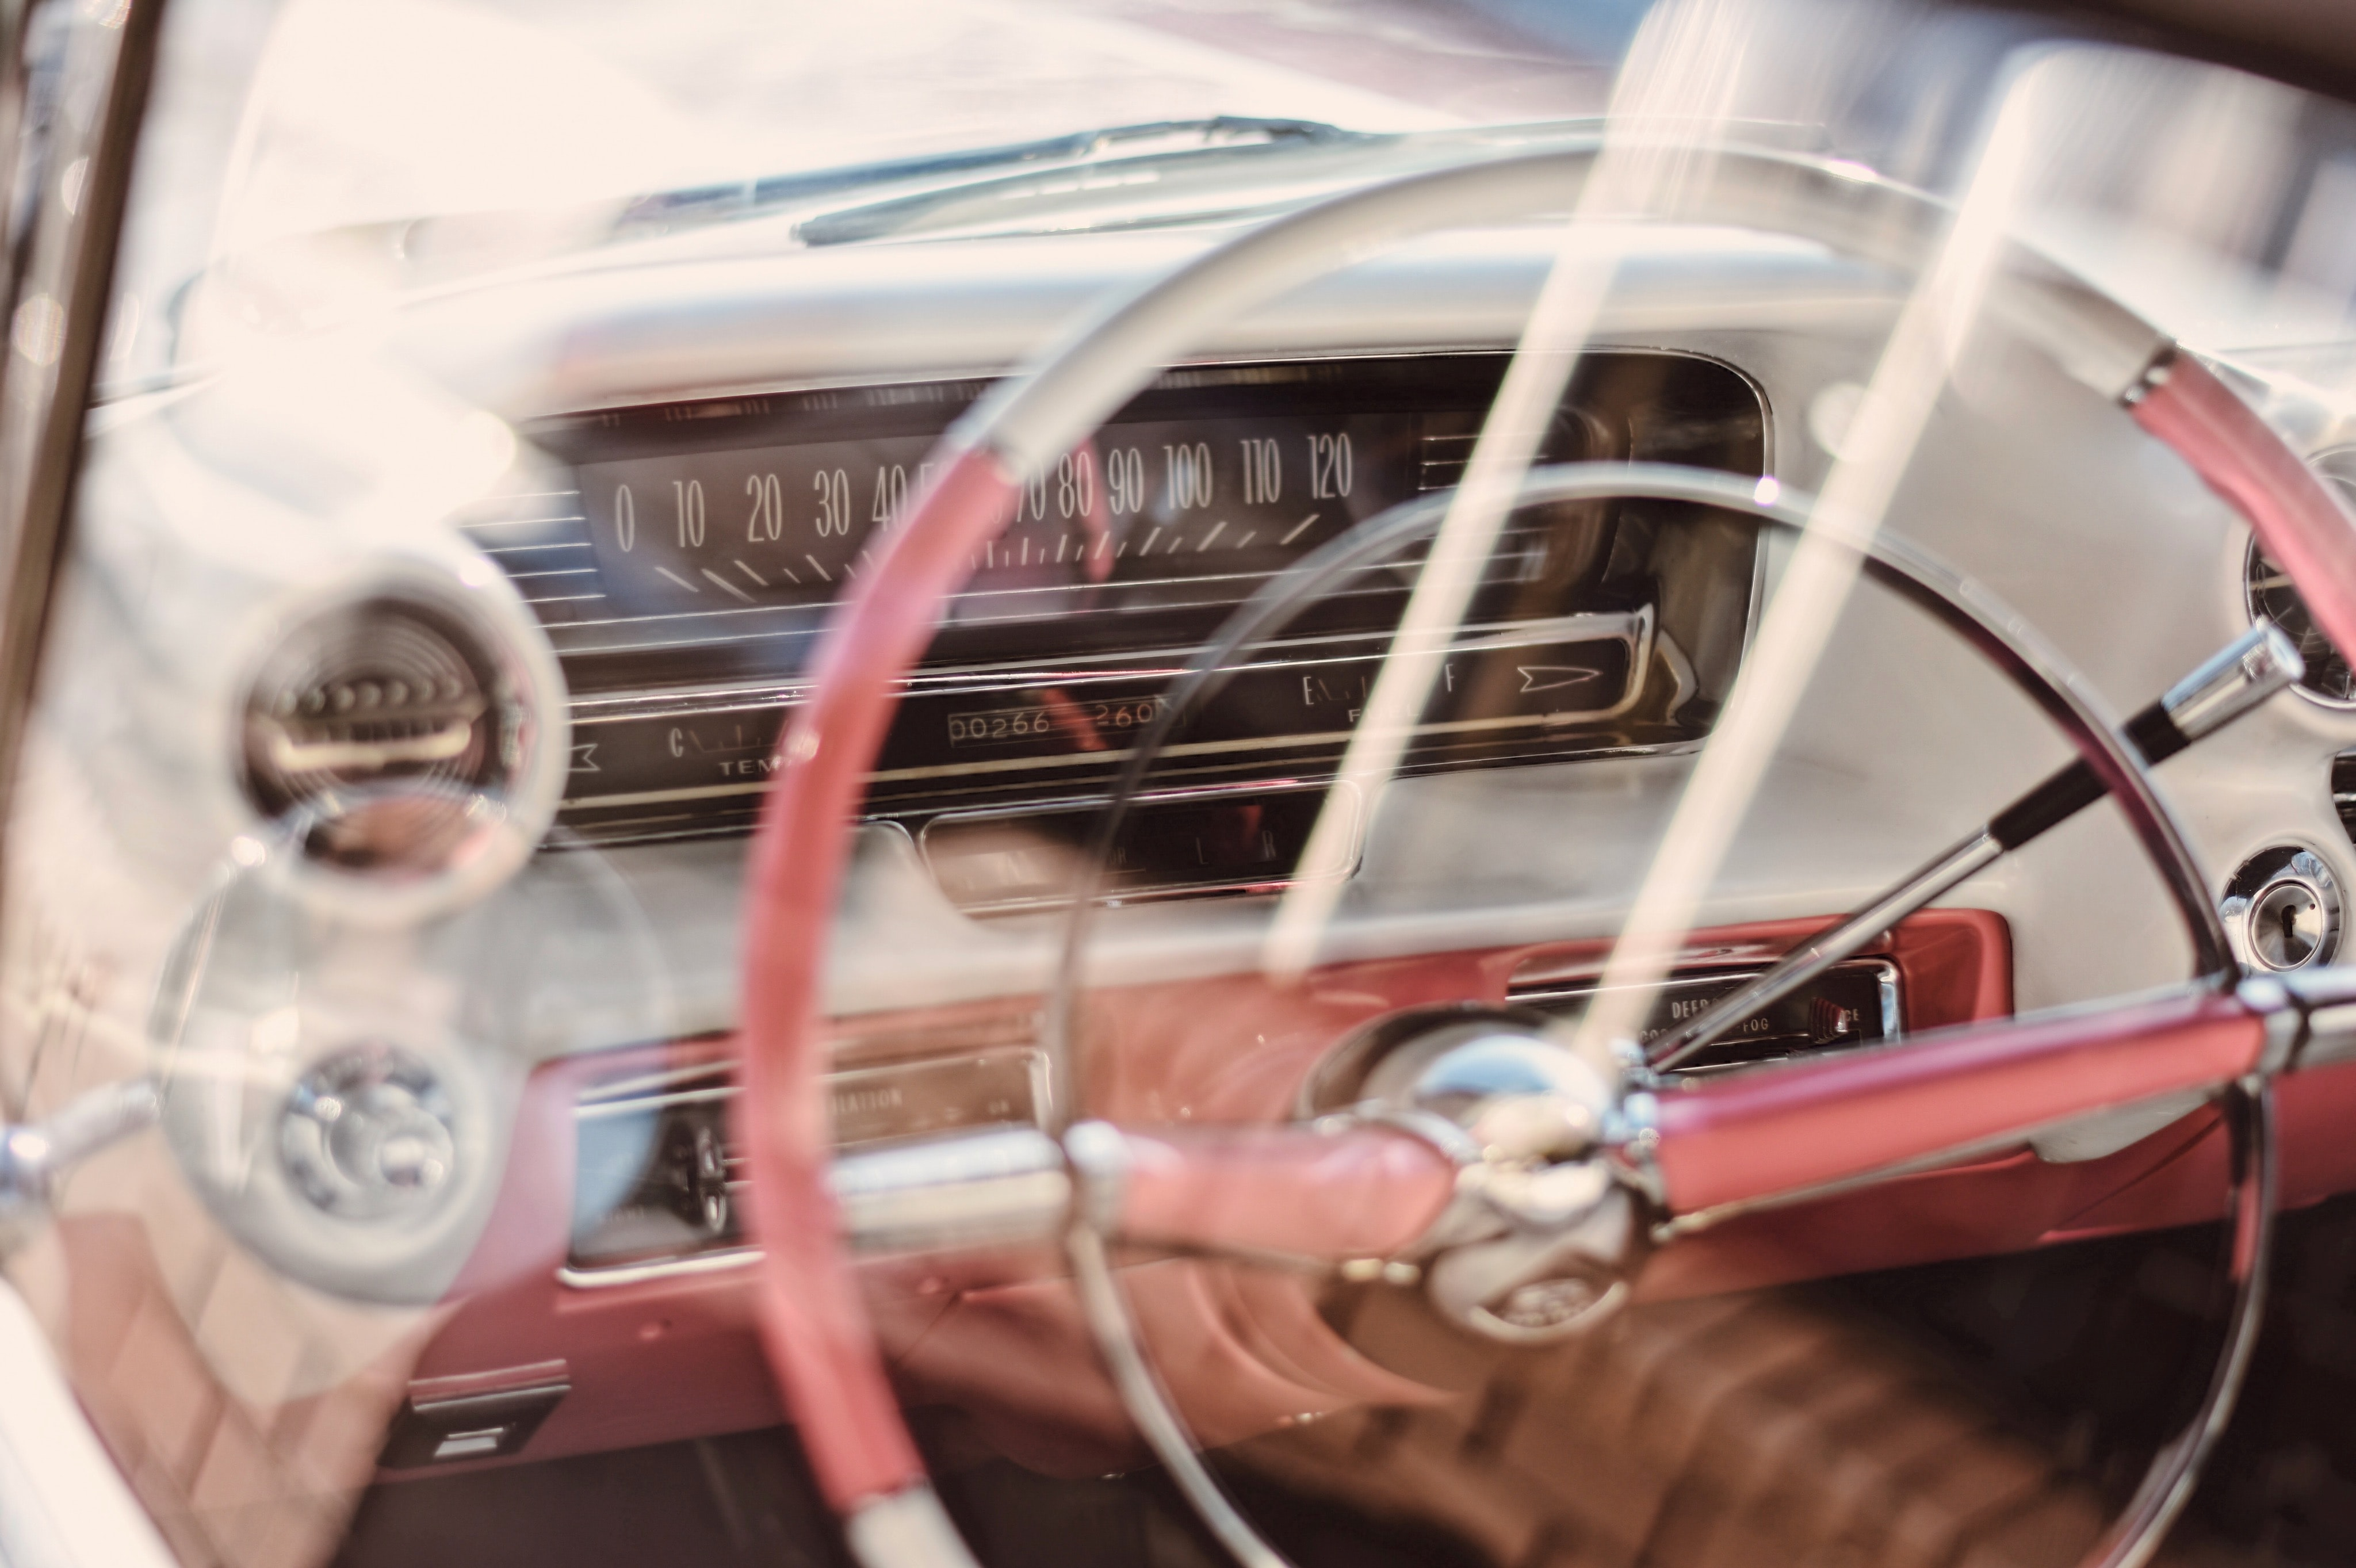 The steering wheel and dashboard inside an older car.